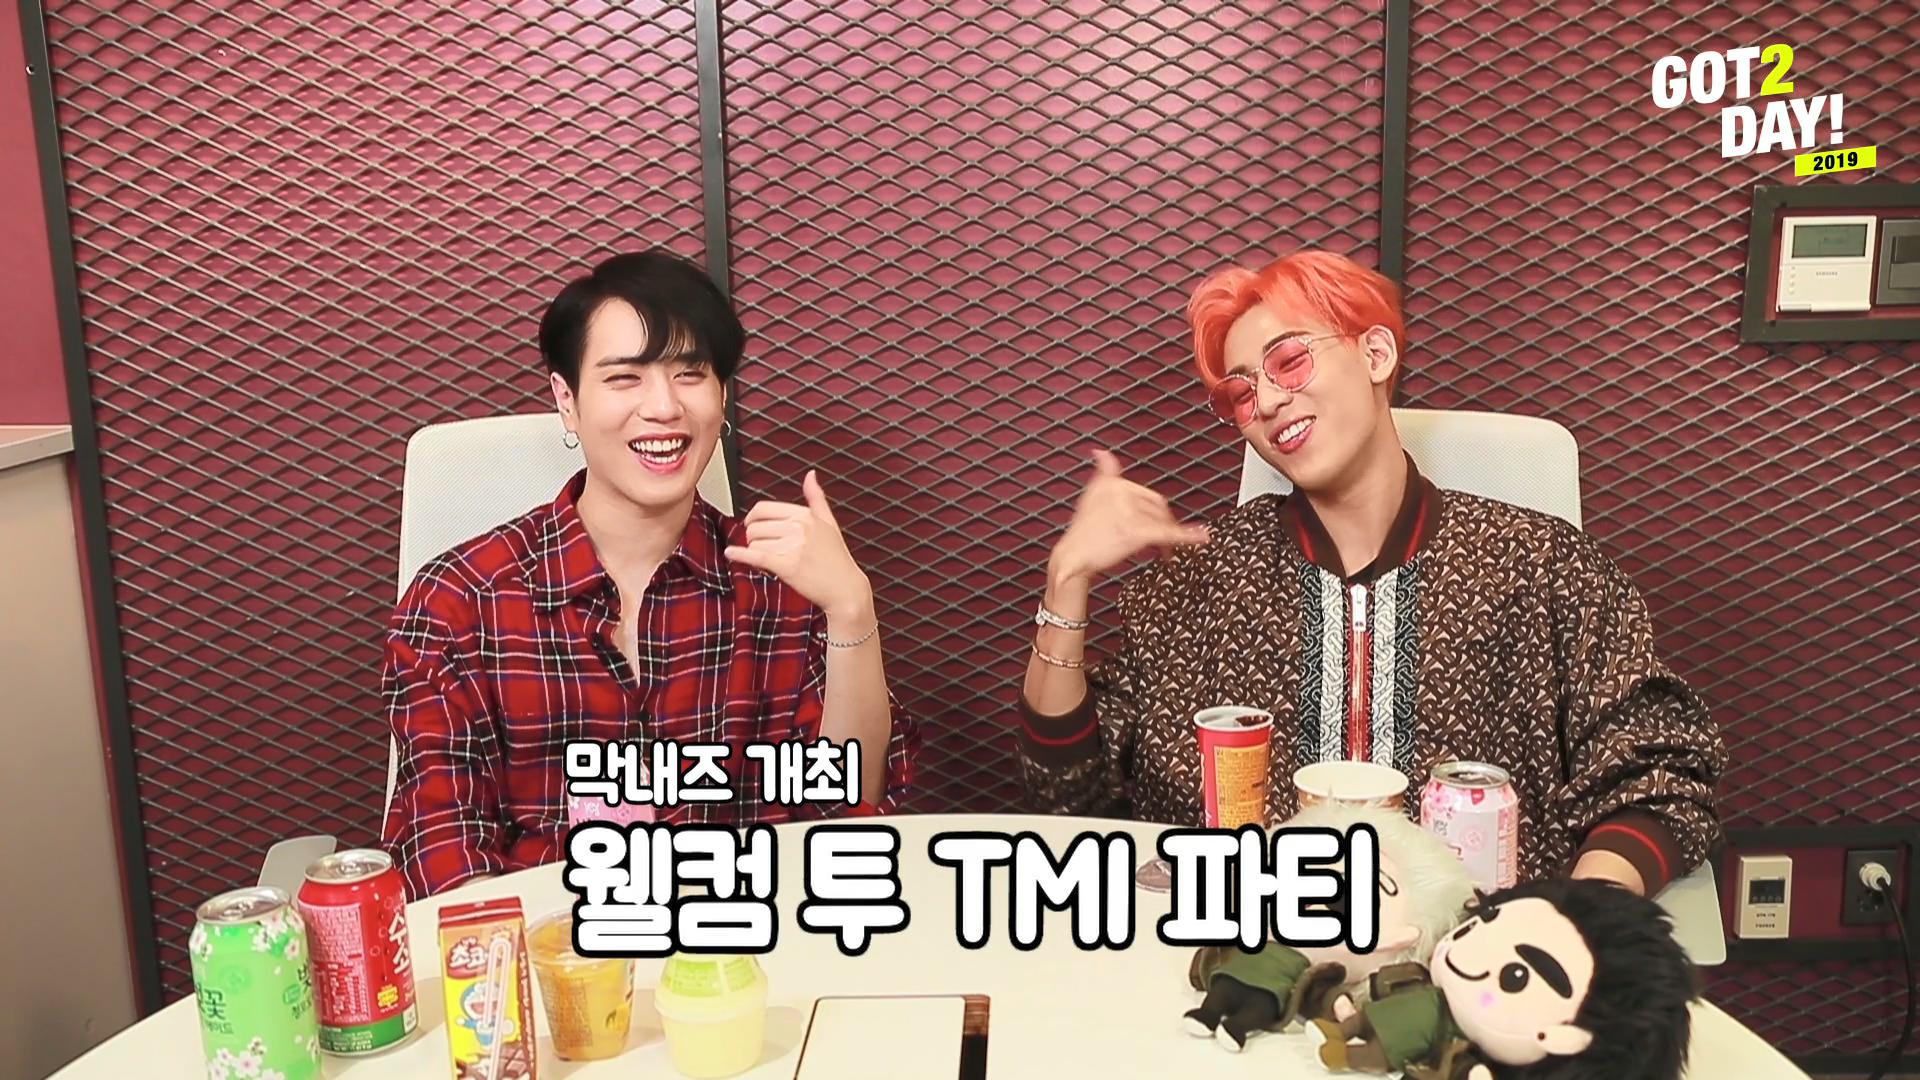 [GOT2DAY 2019] 11. BamBam & Yugyeom